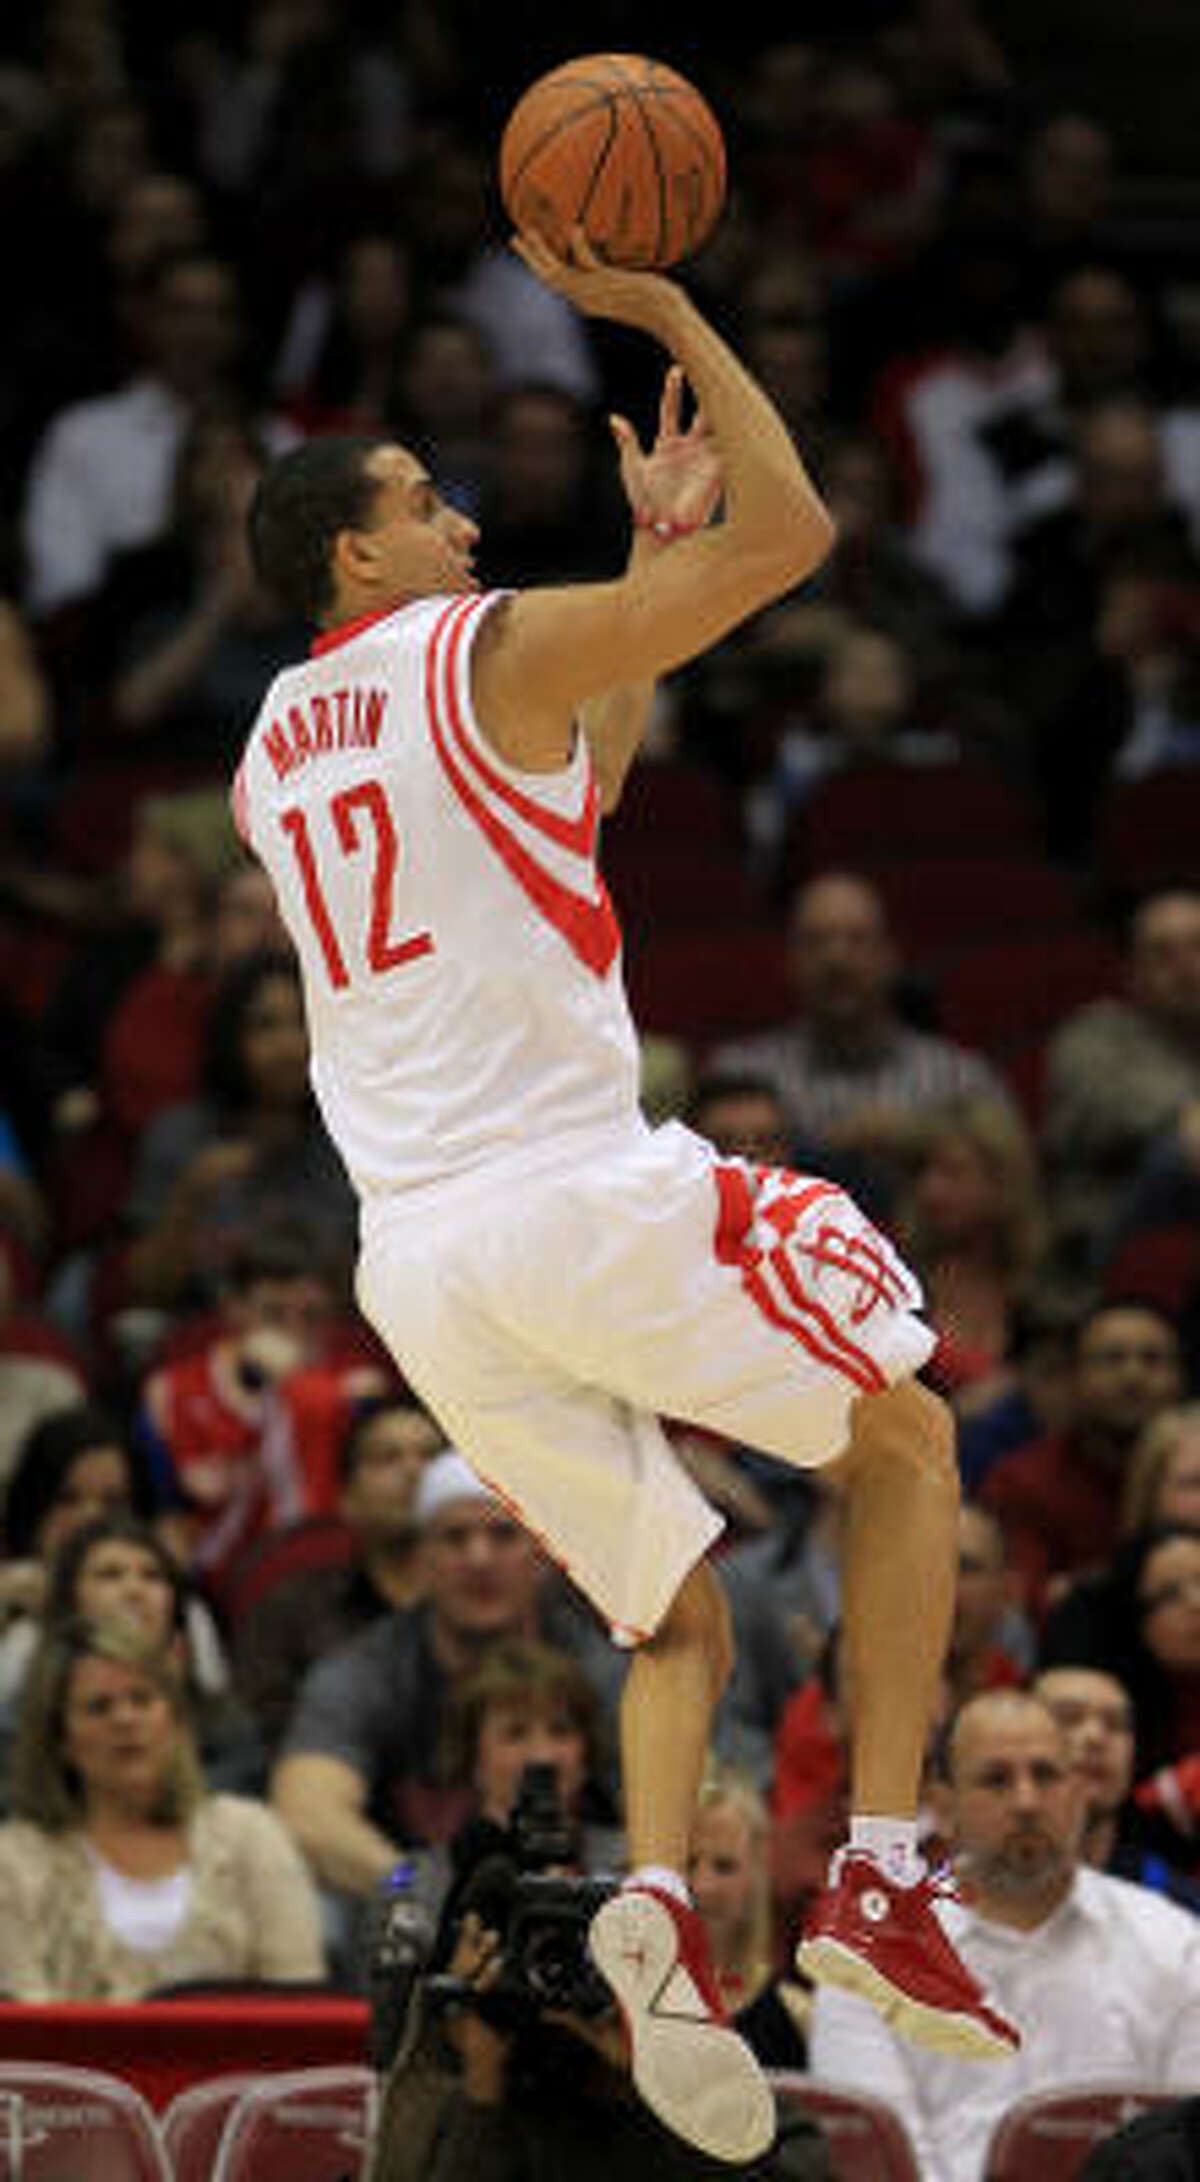 Rockets guard Kevin Martin puts up a soft running shot for a basket in the first quarter. Martin finished with 17 points.